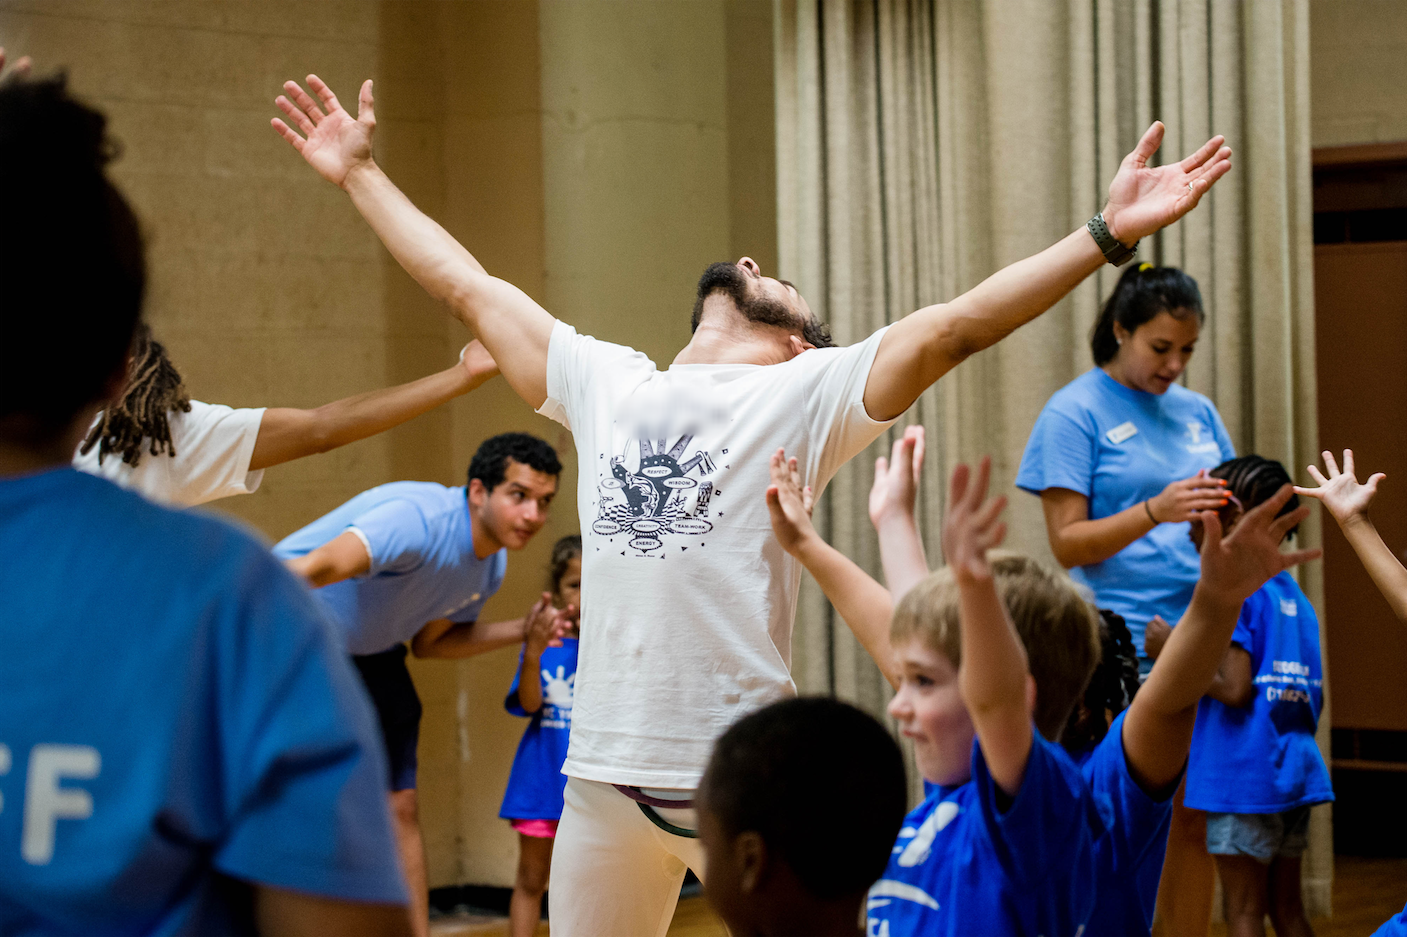 UPLIFTING & IMPROVING CHILDREN'S LIVES THROUGH ARTS, EDUCATION & COMMUNITY-BUILDING RESOURCES